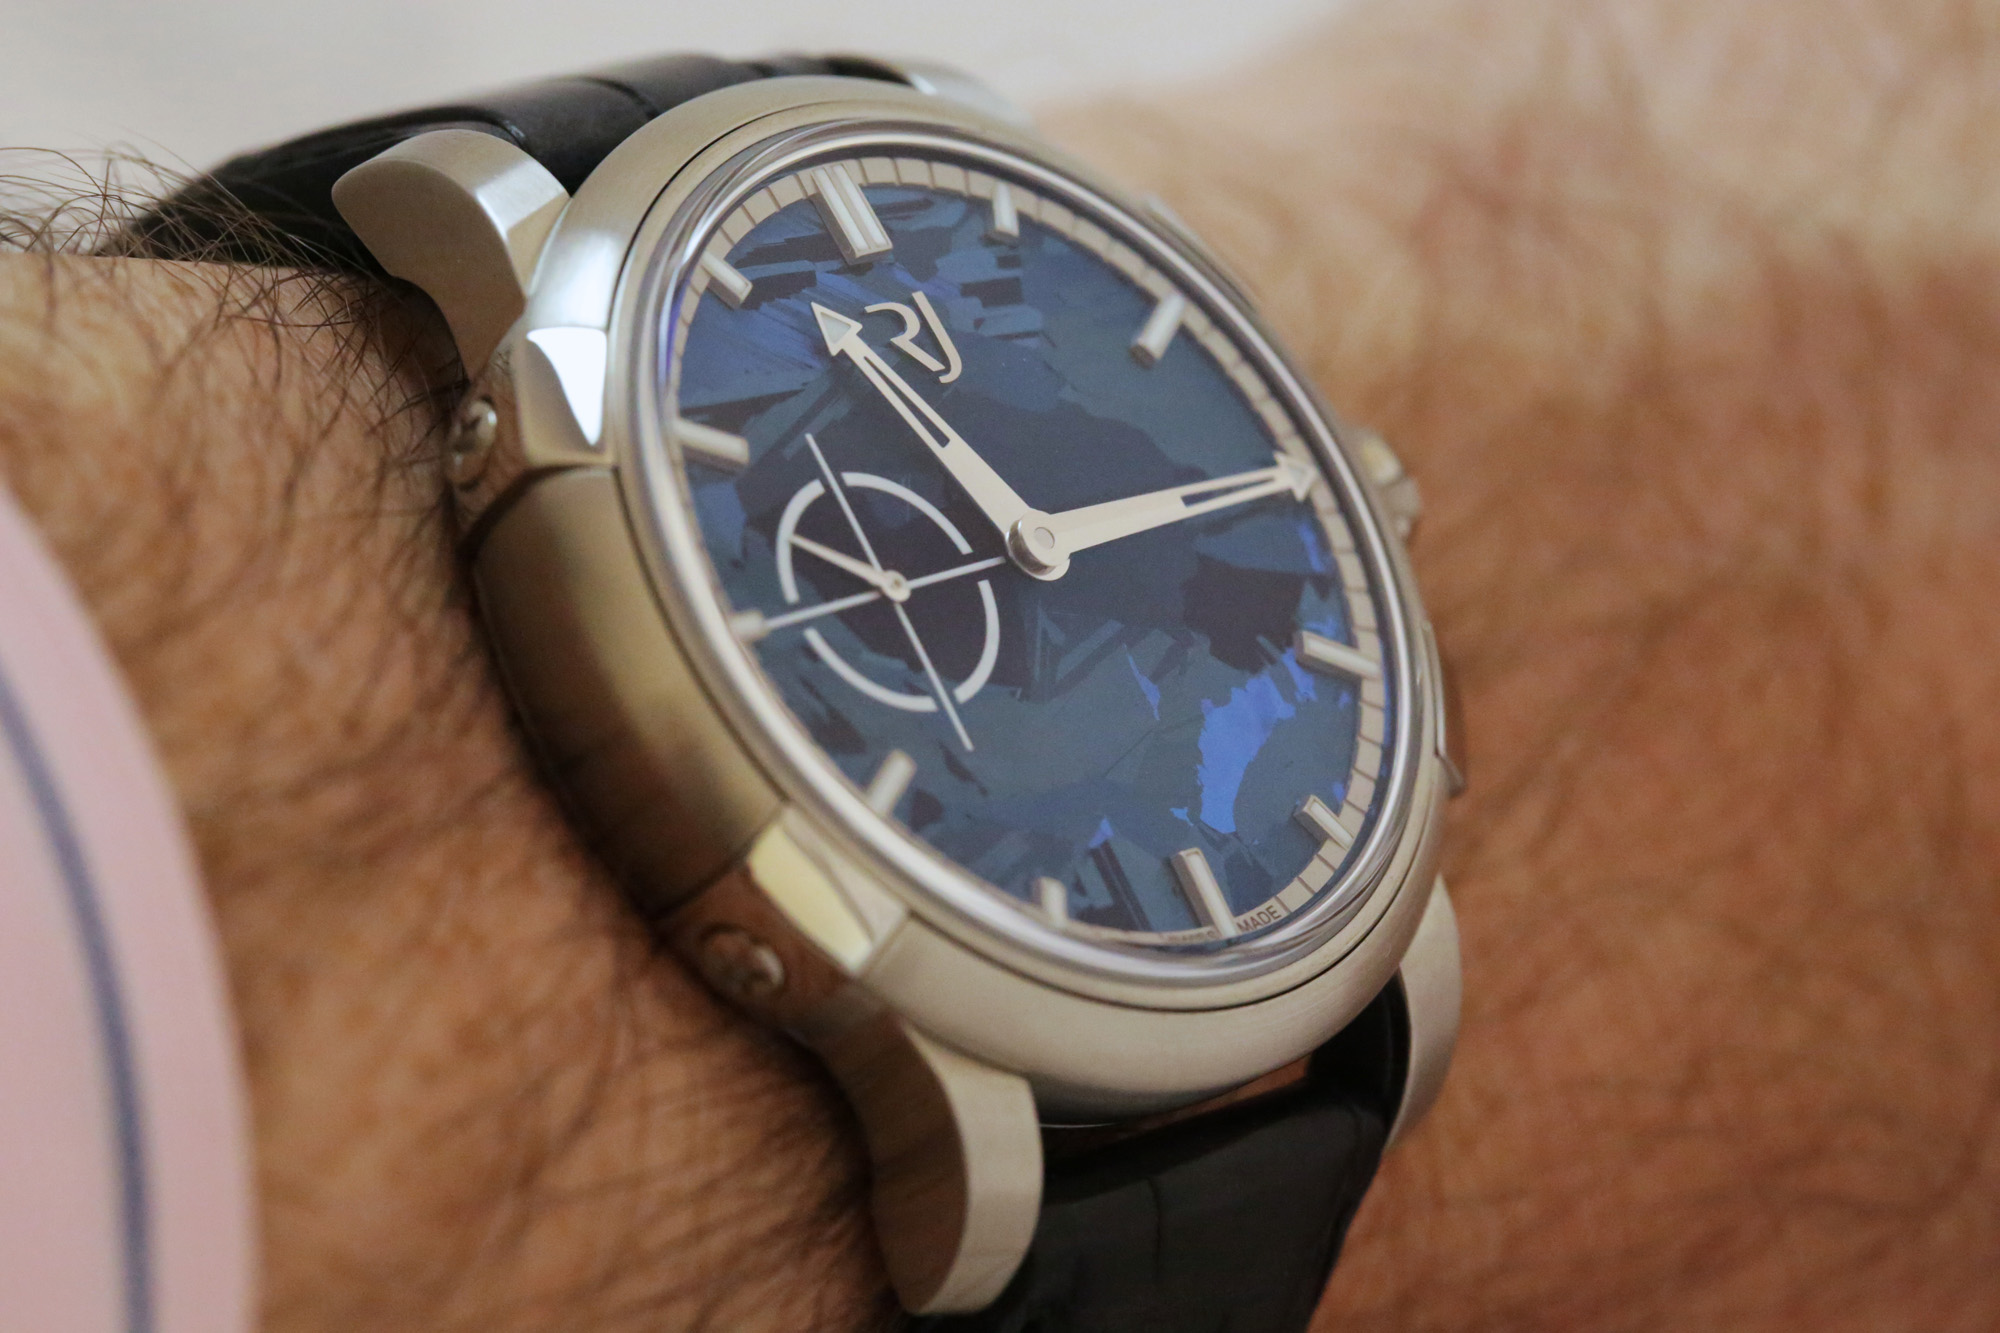 RJ-Romain Jerome 1969 Heavy Metal Blue Silicium - Wristshot